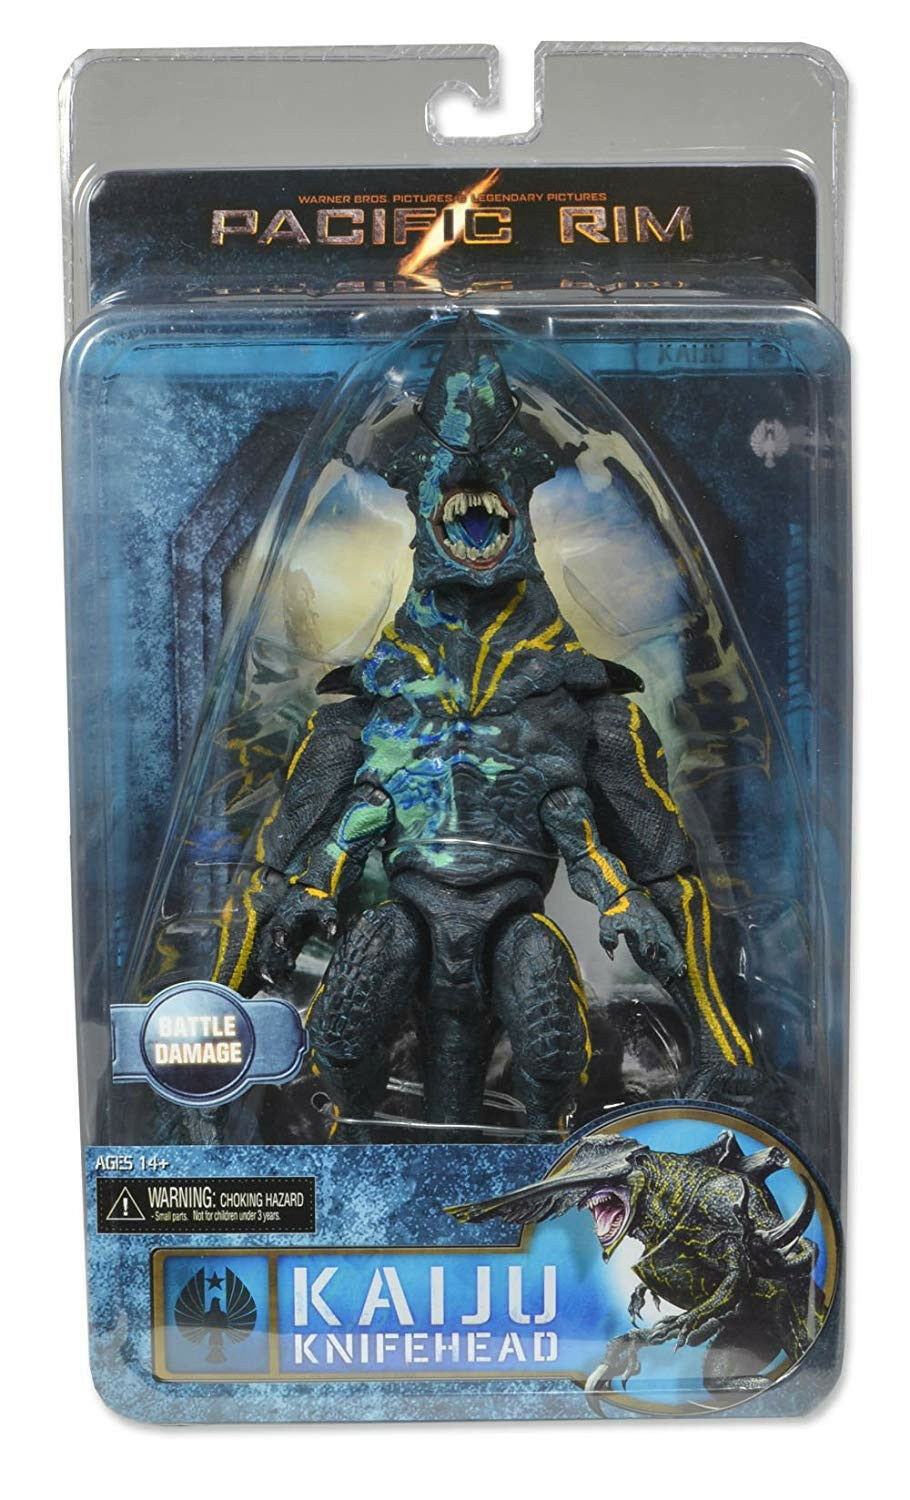 Pacific Rim Series 3 - Kaiju Ultra Deluxe Knifehead figure